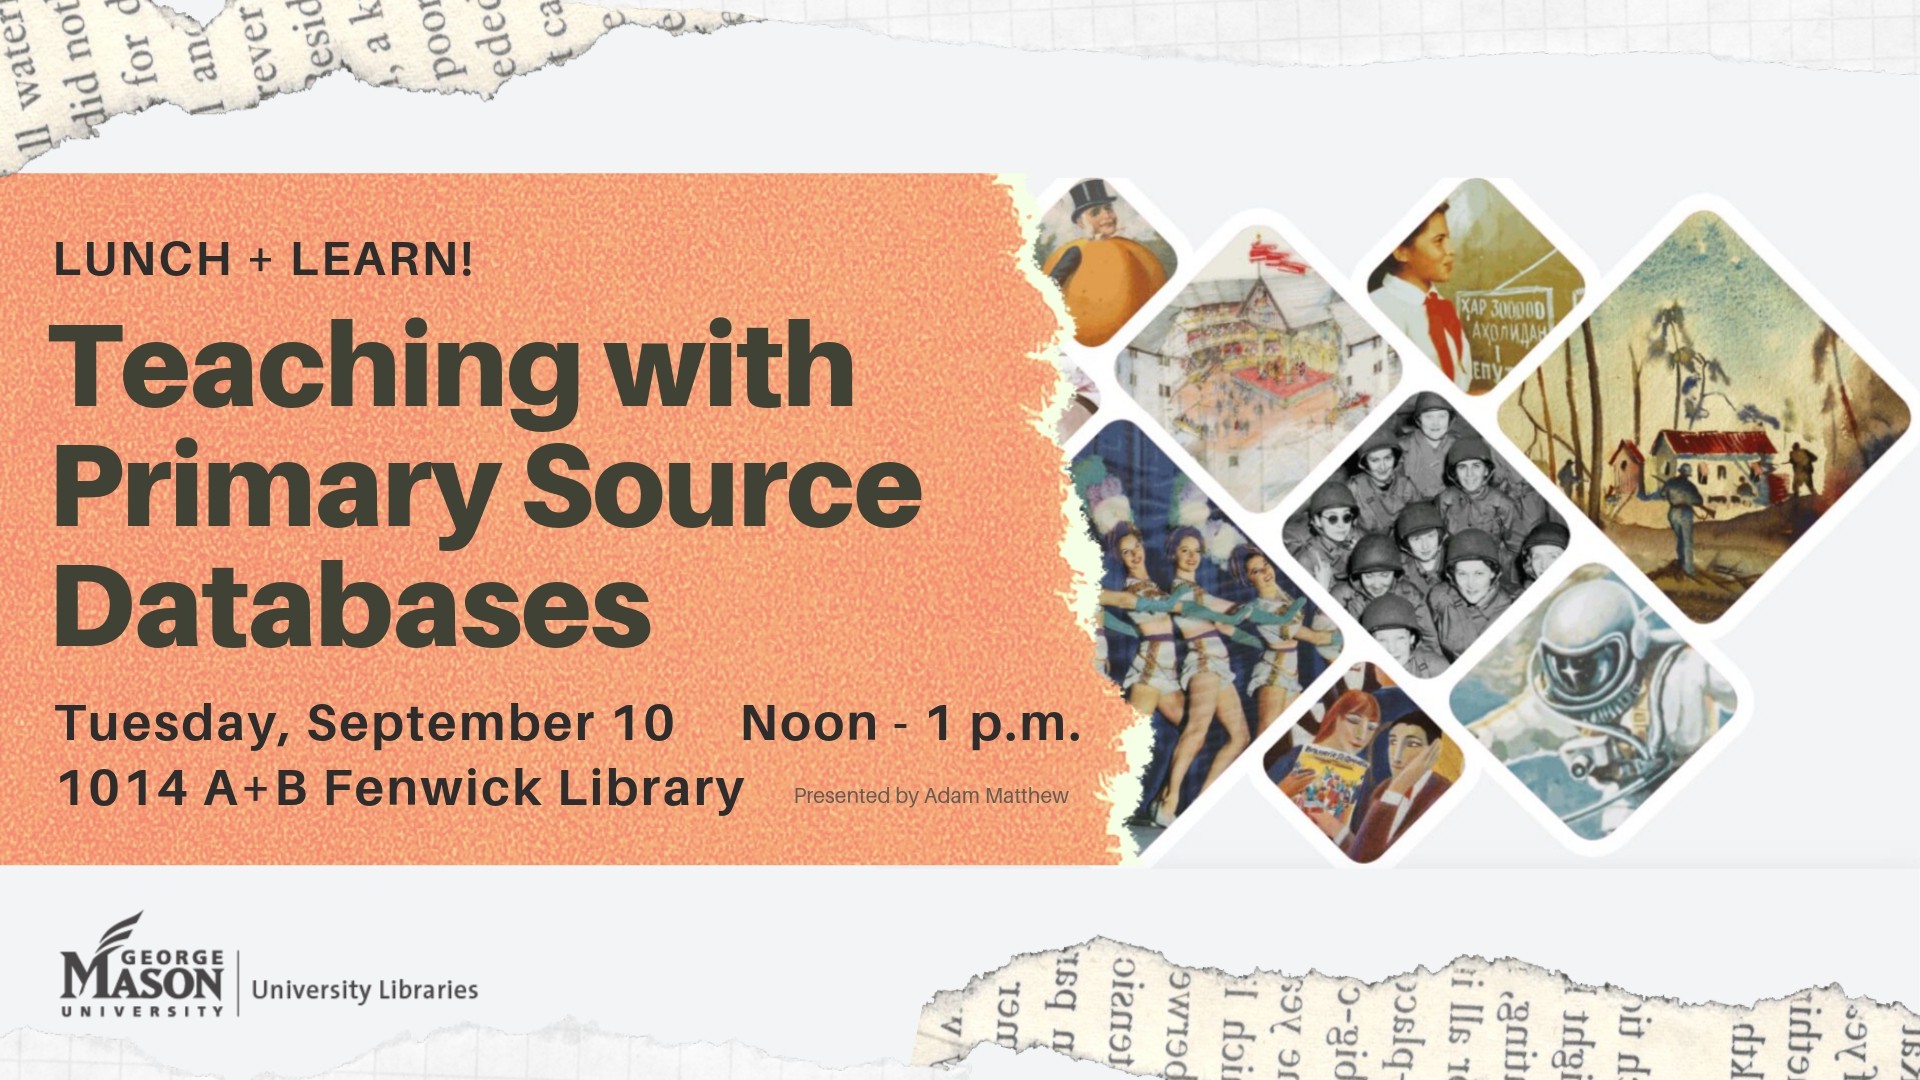 Lunch & Learn! Teaching with Primary Source Databases